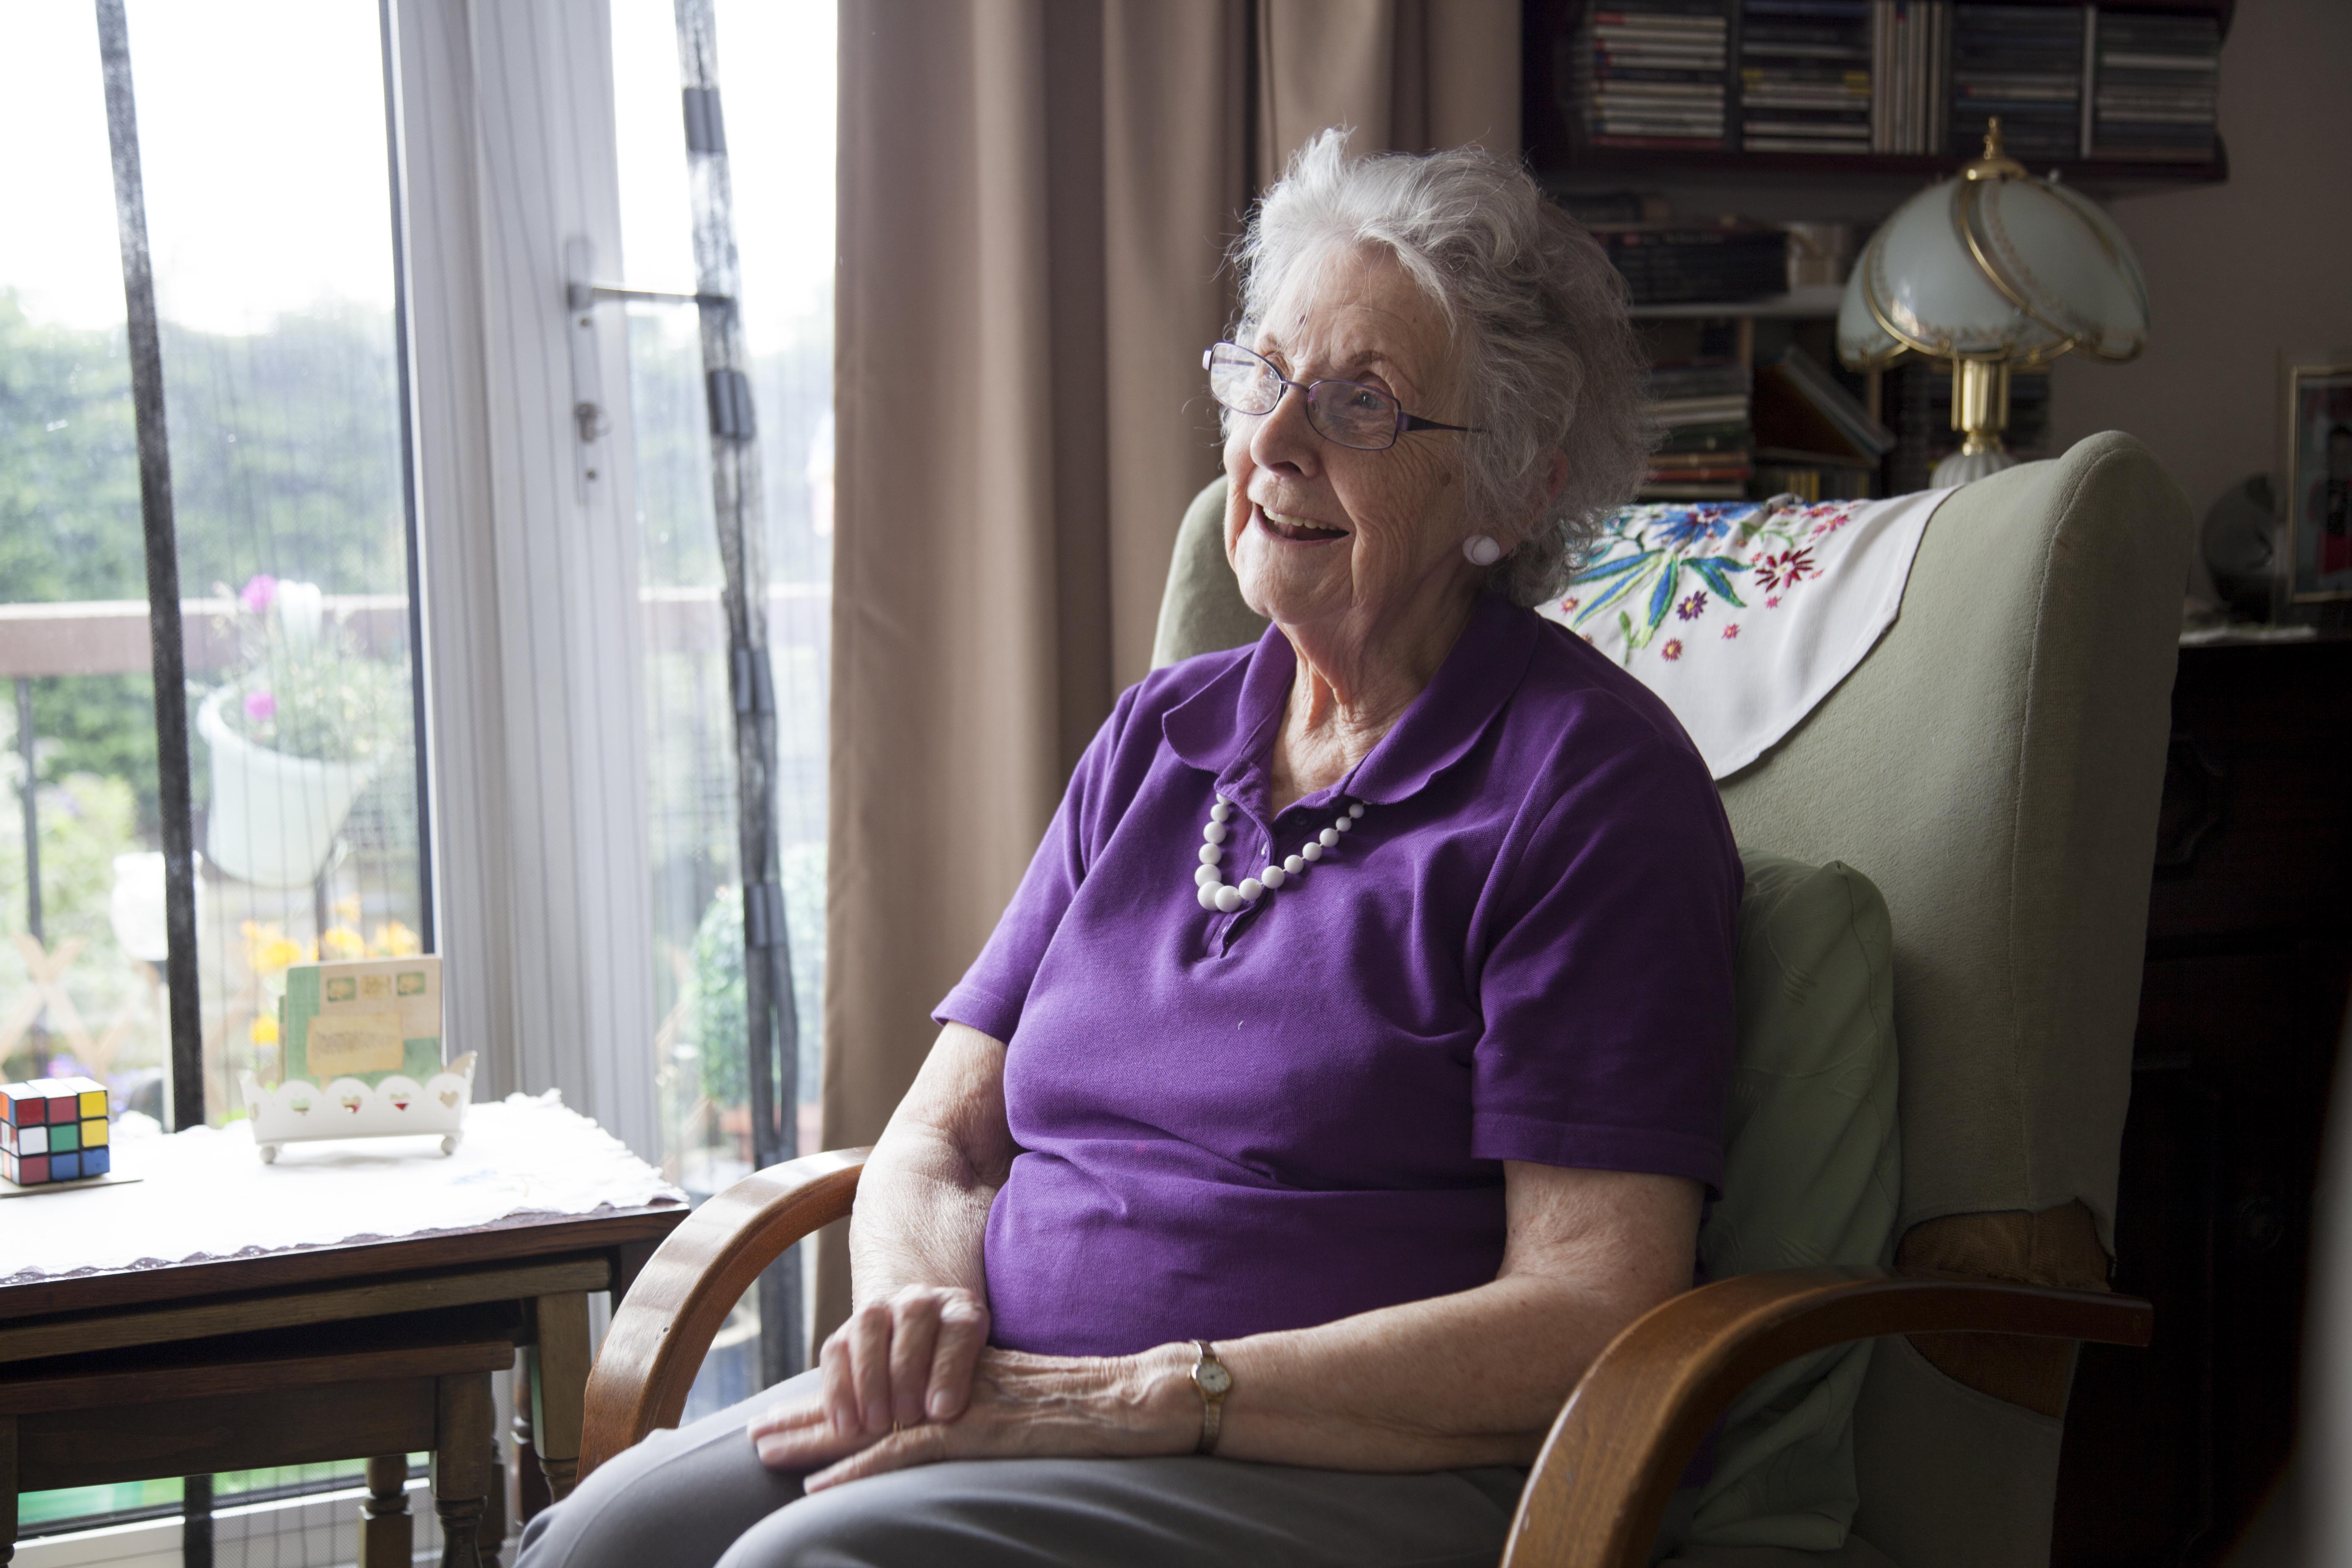 elder abuse case studies uk Hundreds of thousands of elderly people are suffering abuse and neglect in in one case, an elderly blind man as we approach a vote on the uk's.